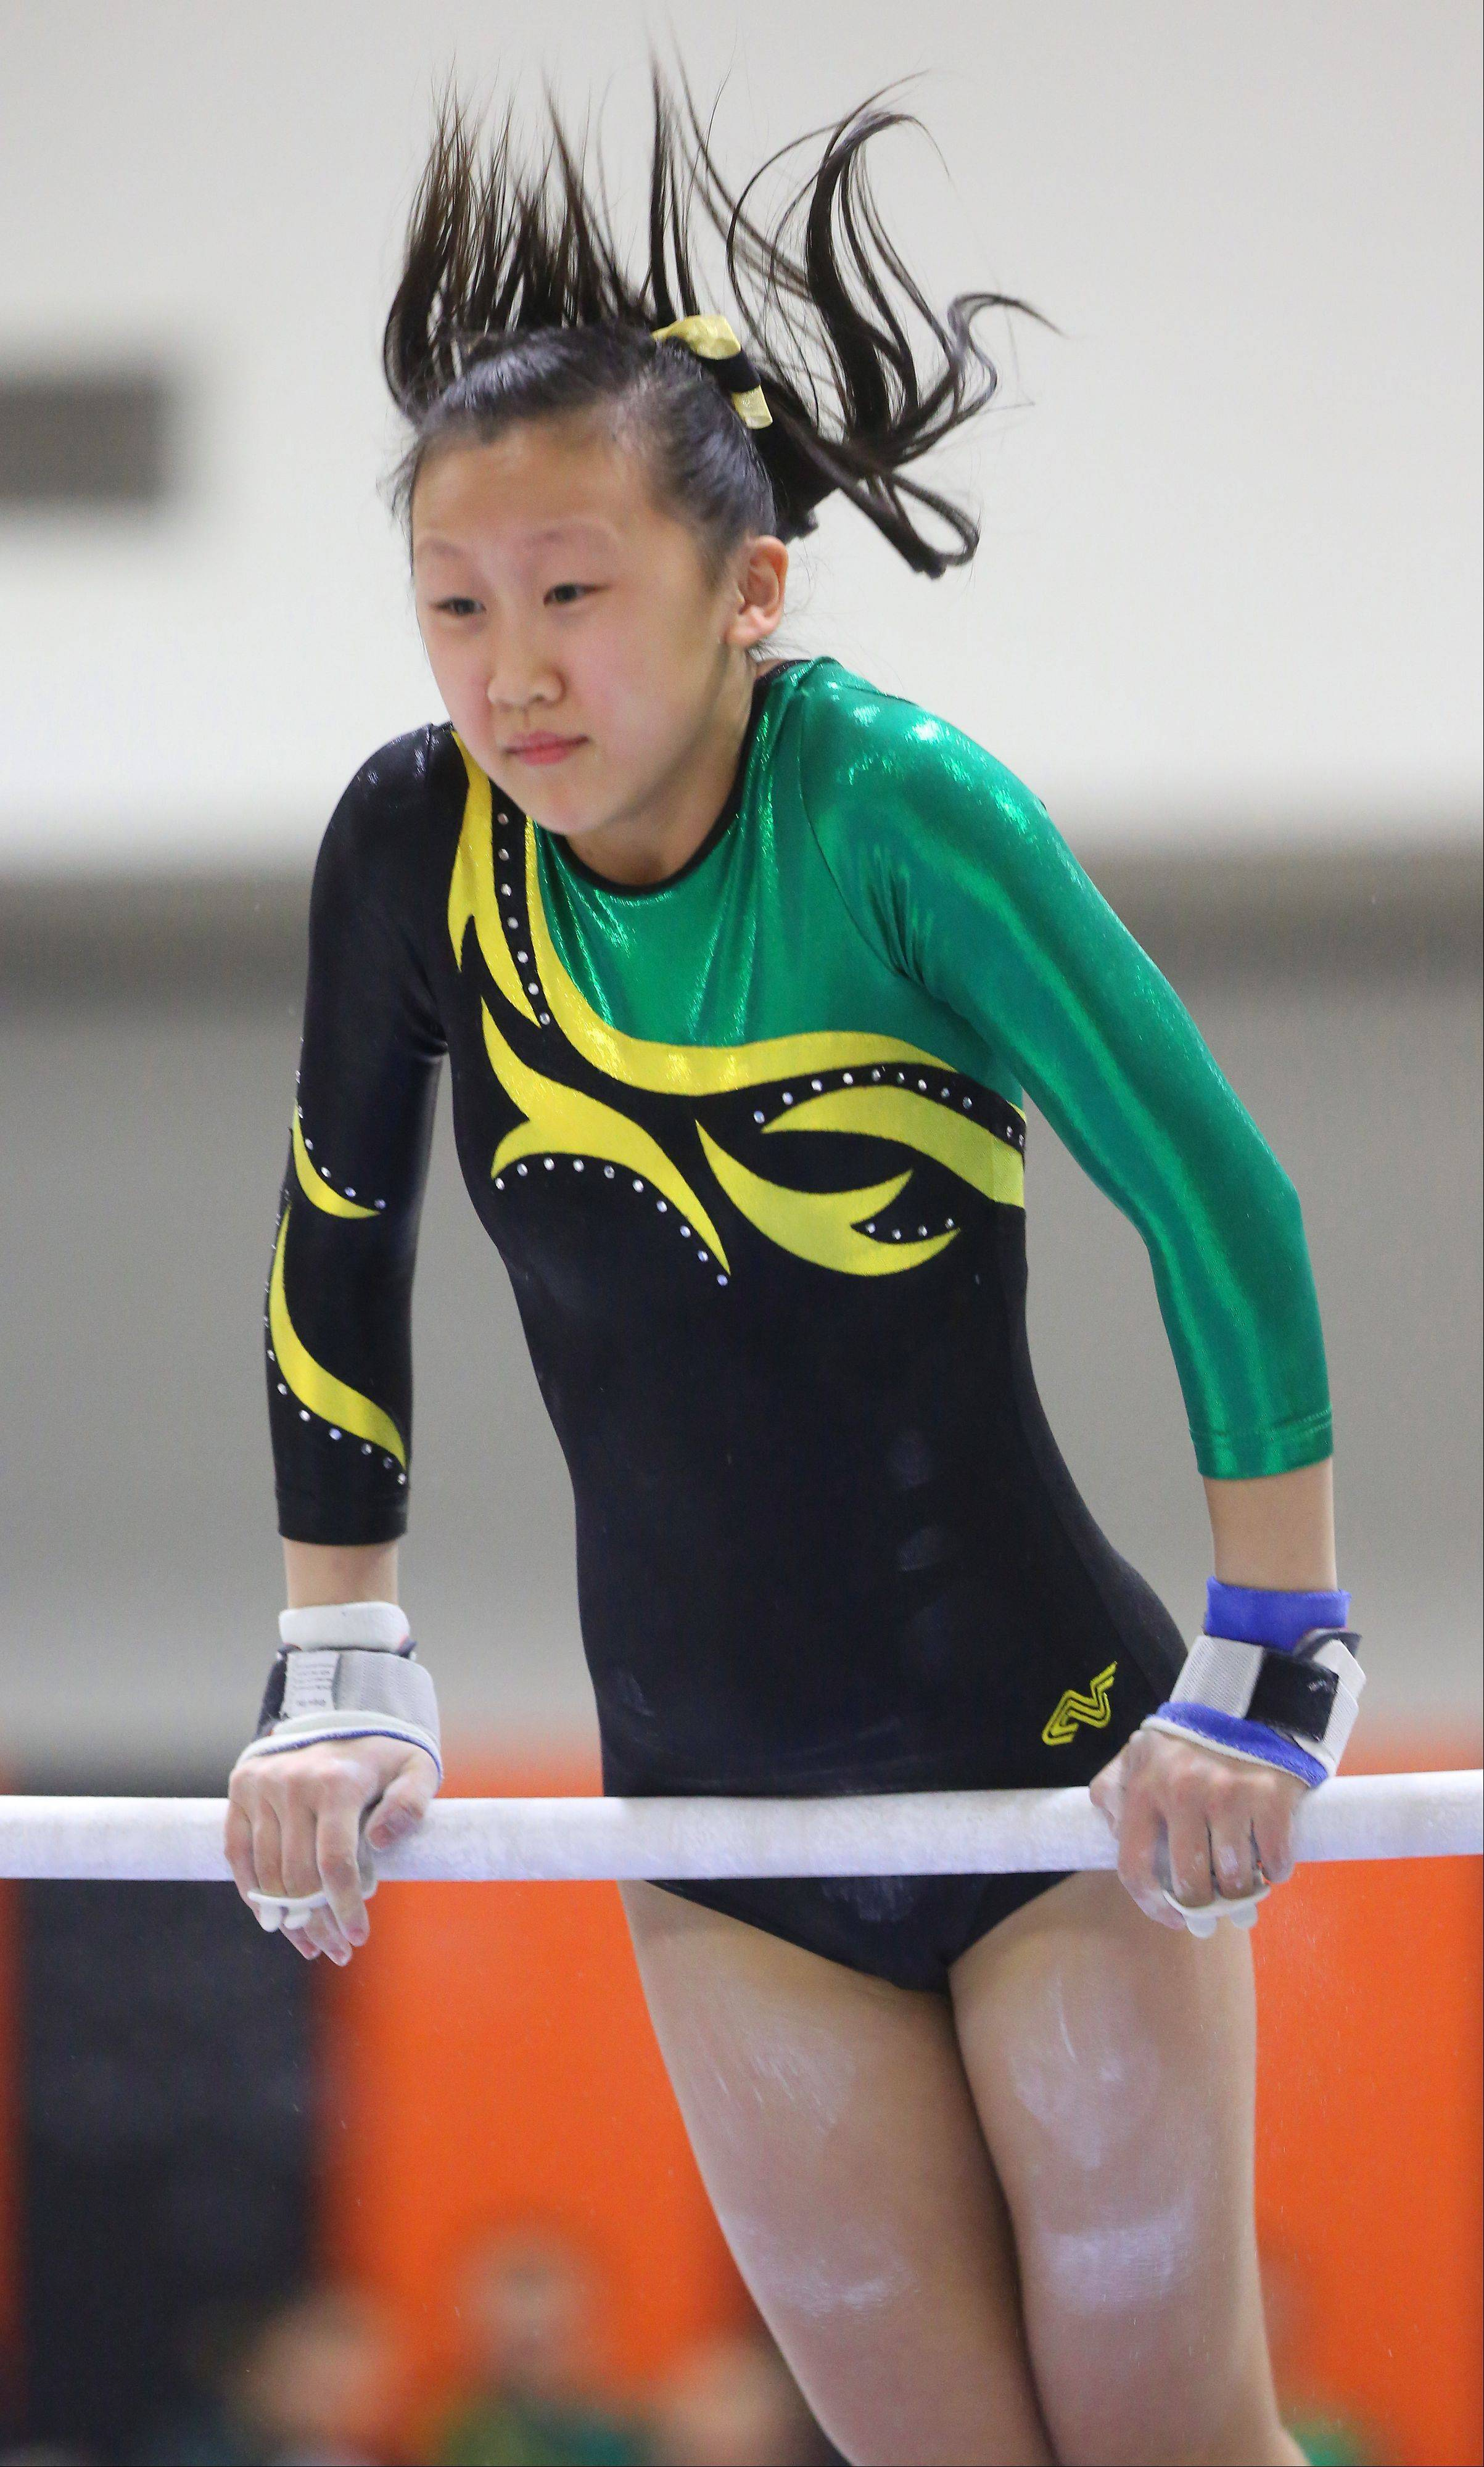 Waubonsie Valley's Allison Yu competes in the uneven parallel bar routine during the Illinois Best Girls Gymnastics Invitational at Wheaton Warrenville South High School.